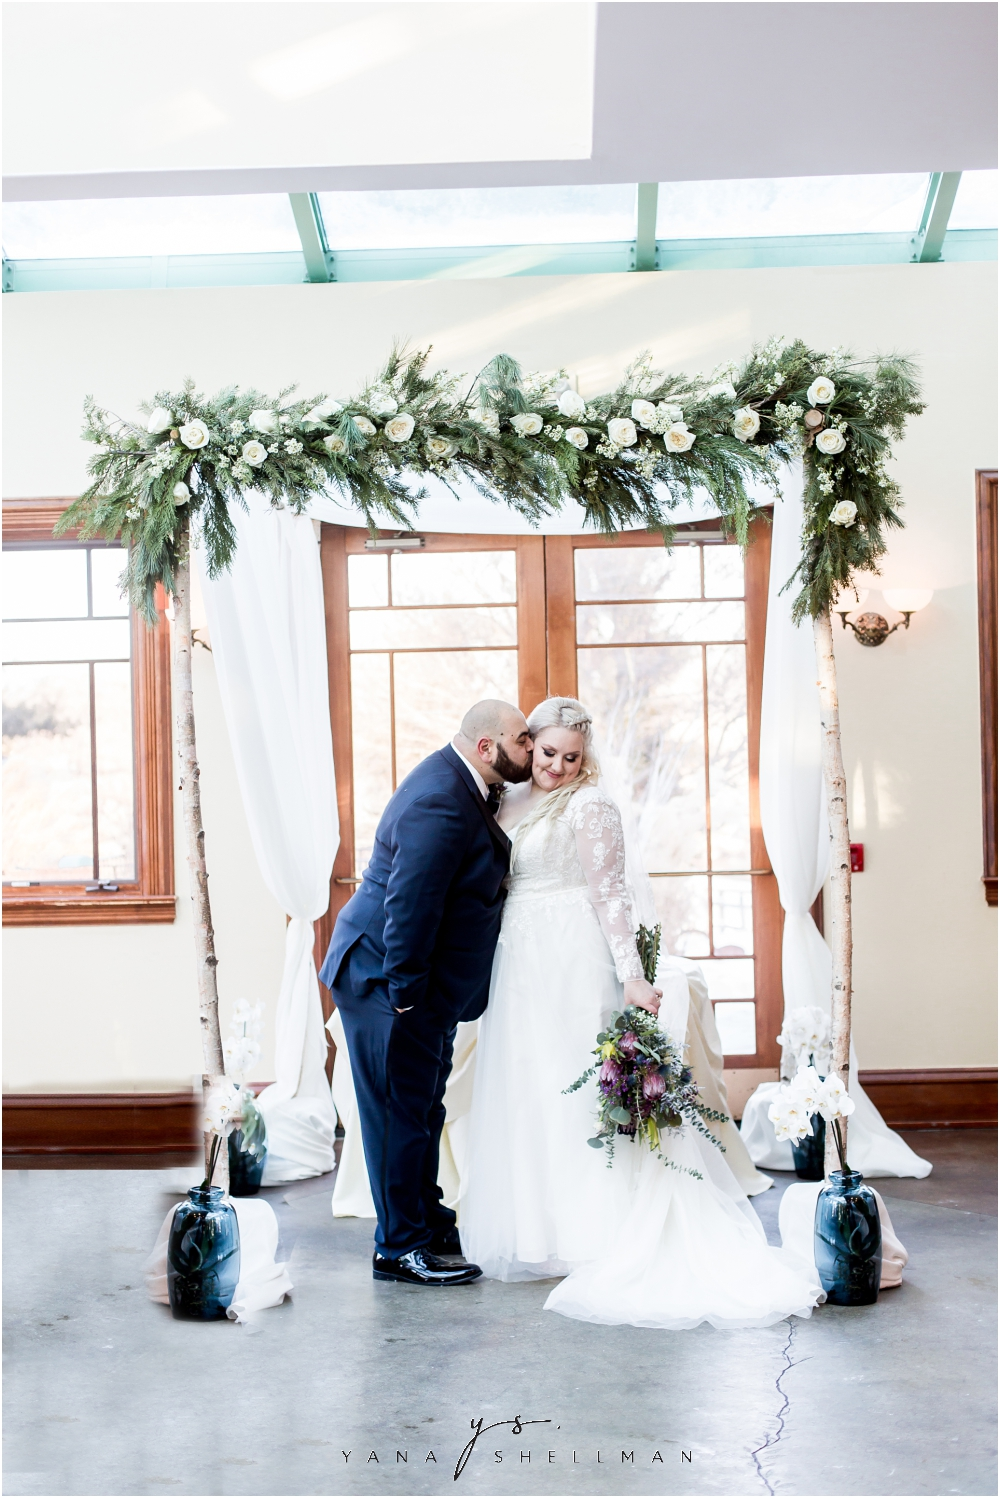 Knowlton Wedding Photos by Philadelphia Wedding Photographers - Abby+Lior Wedding Pictures